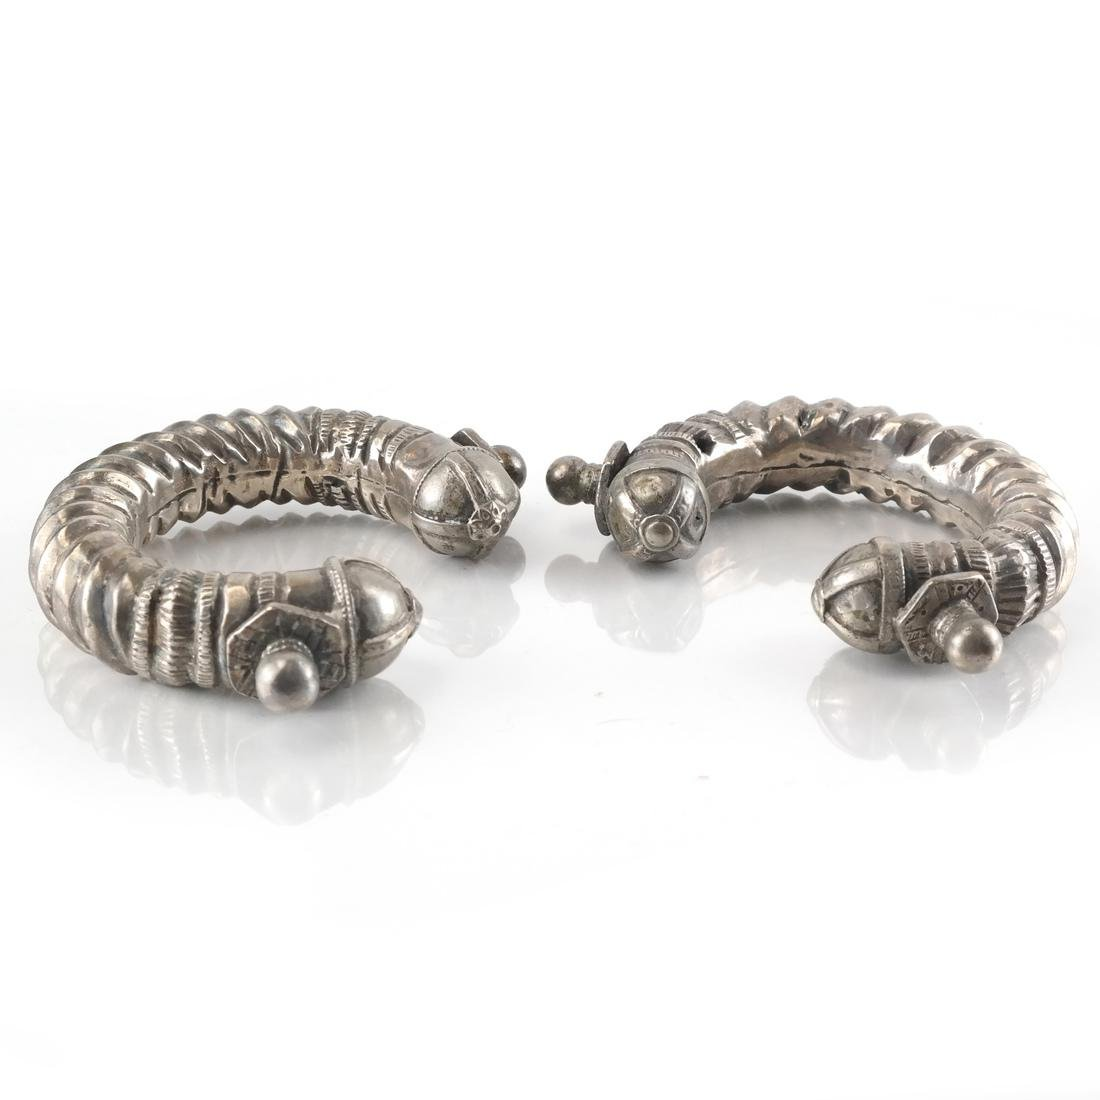 2 Antique Silver Bangle Bracelets,